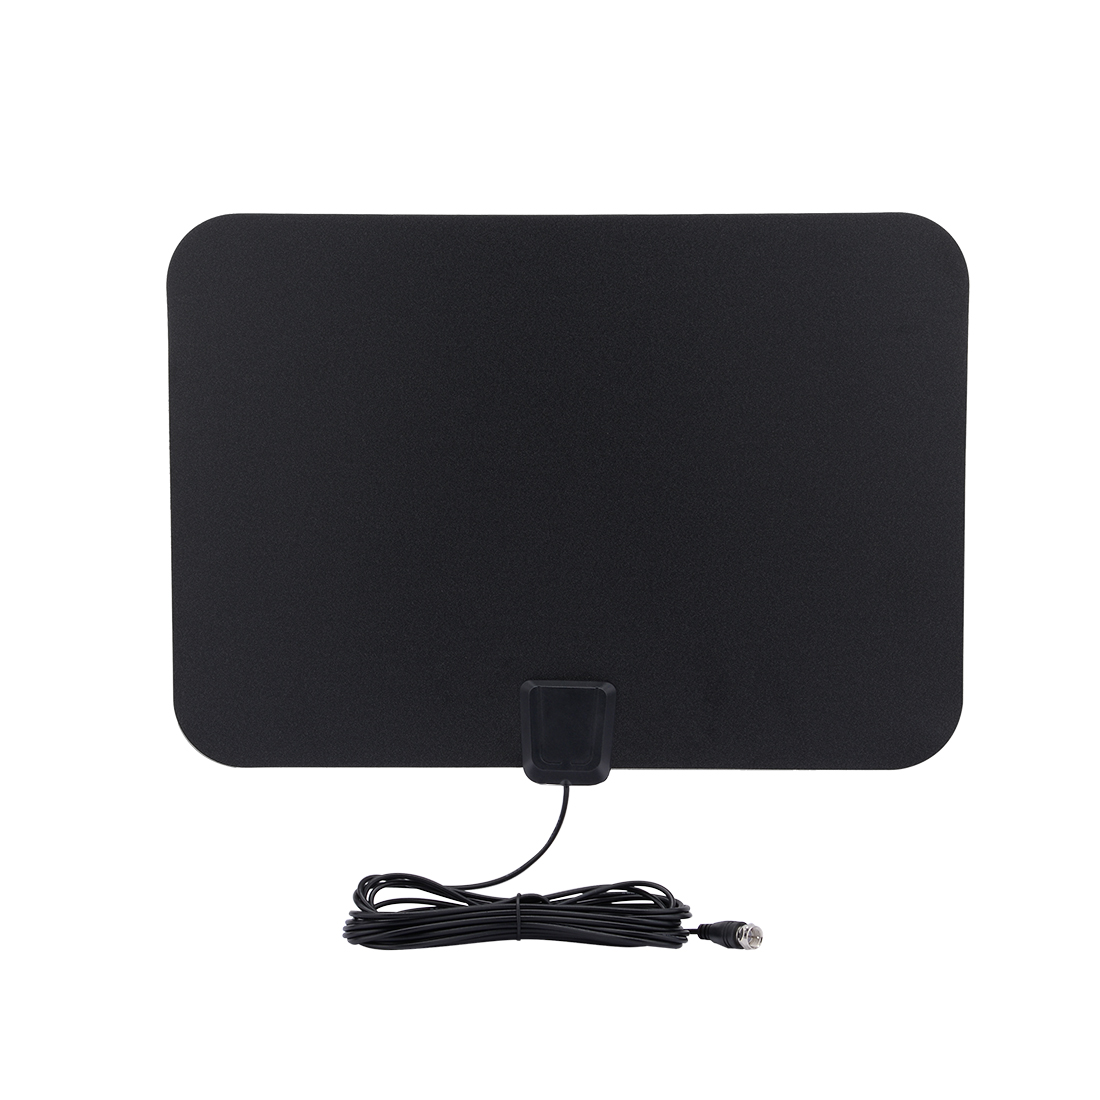 Amplified HDTV Antenna - 50 Mile Range with Detachable Amplifier USB Power Supply and long Coax Cable